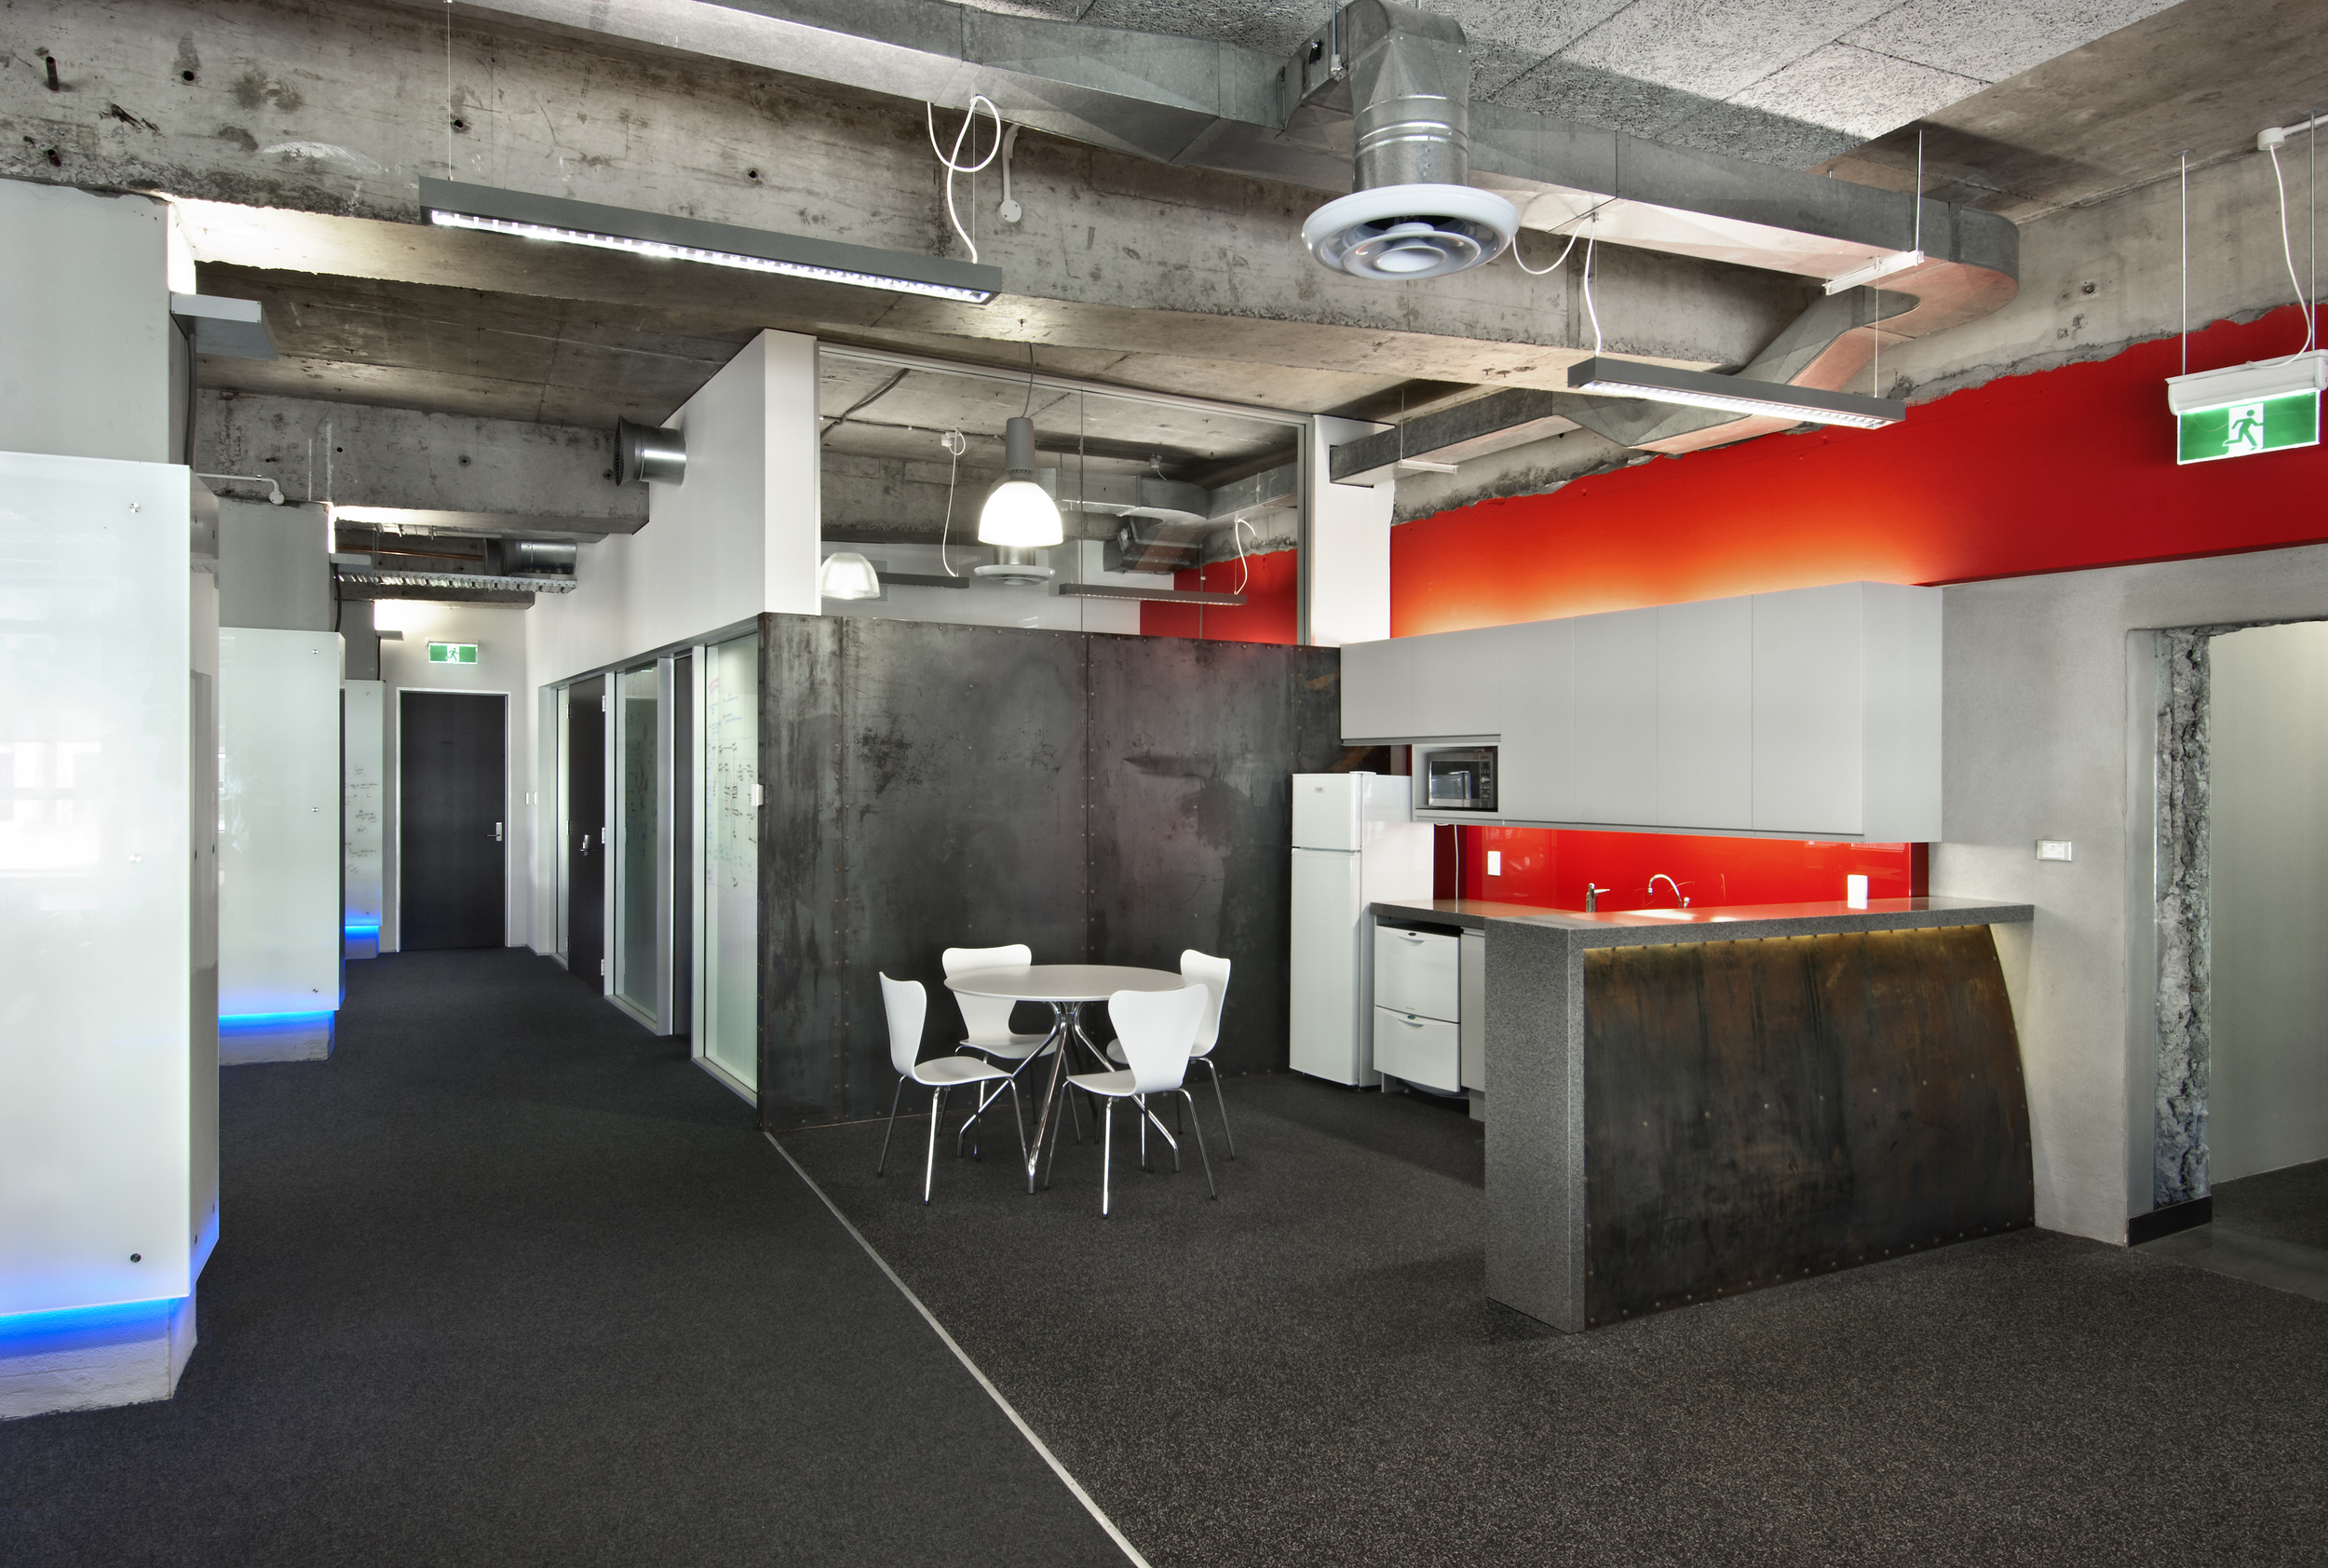 REANNZ     Office Fitout   The brief for this fitout was for an industrial and stripped-back aesthetic. The project and scope was pushed rigorously by REANNZ's Chief Executive Donald Clark whose close and consistent attention to detail was enthusiastically welcomed.